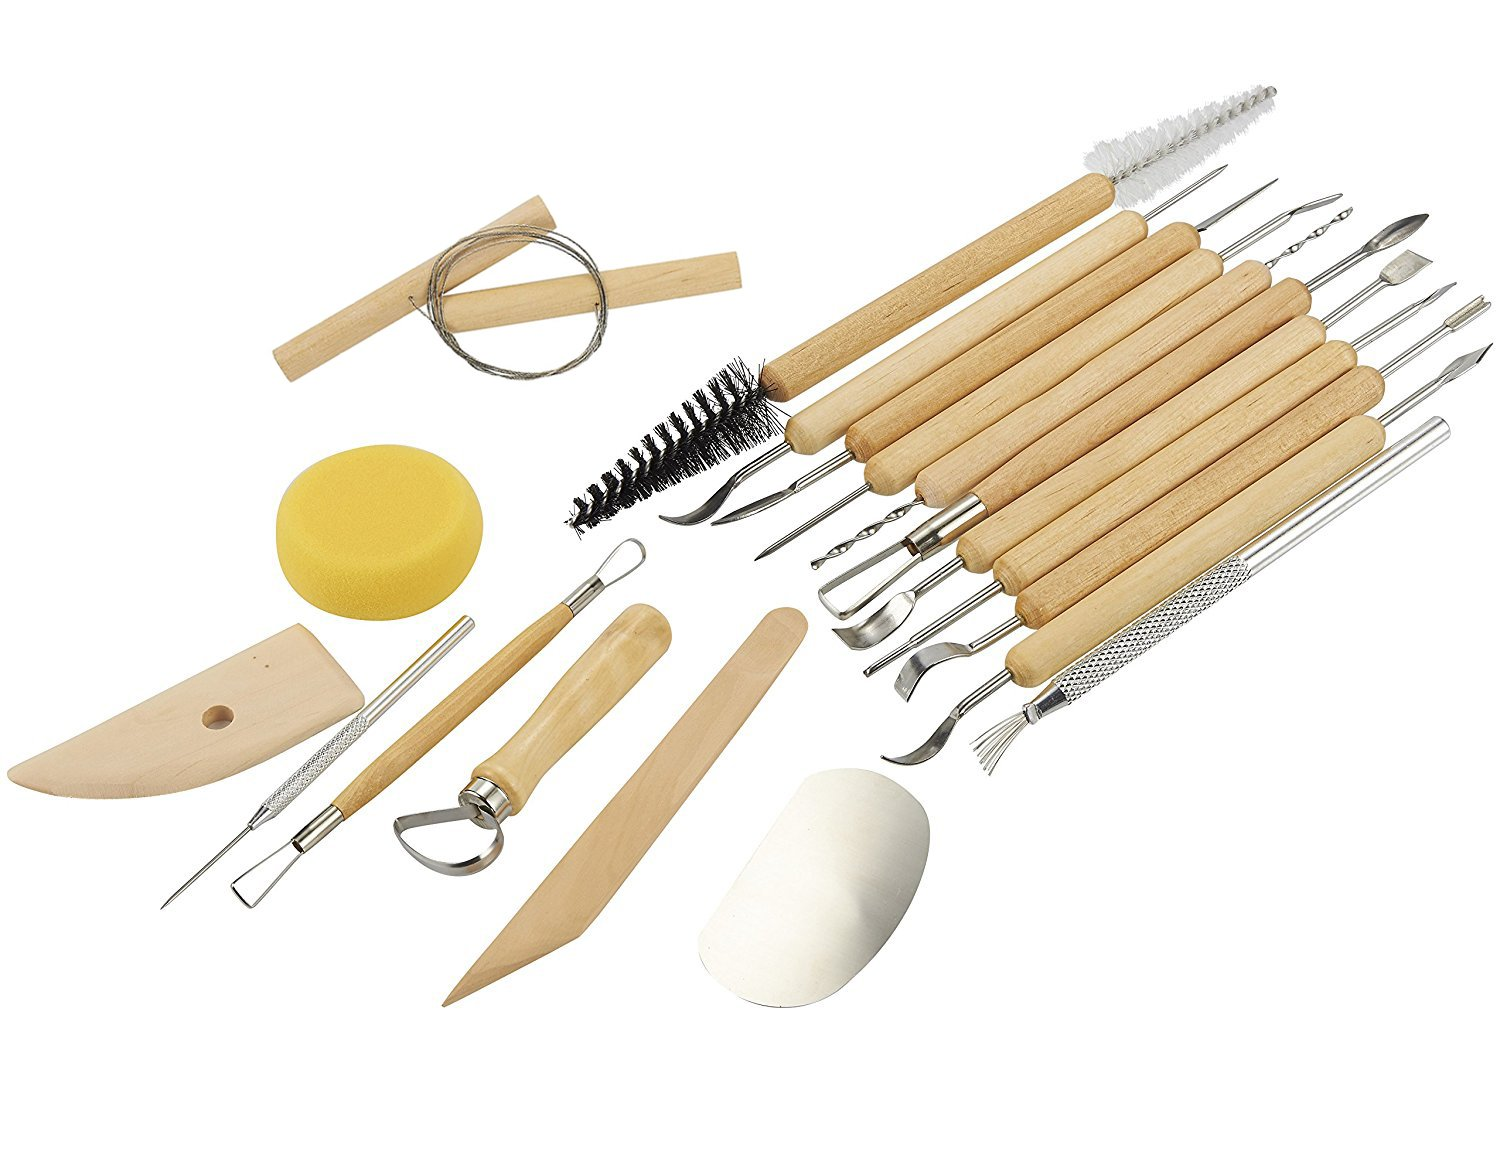 Sculpting Tools - 11-Piece Pottery Carving Tools Set - Double-Sided Ceramic Modeling Tools for Clay and Wood Sculpture Arts - Steel and Hard Wood Handles Juvale 4336842374